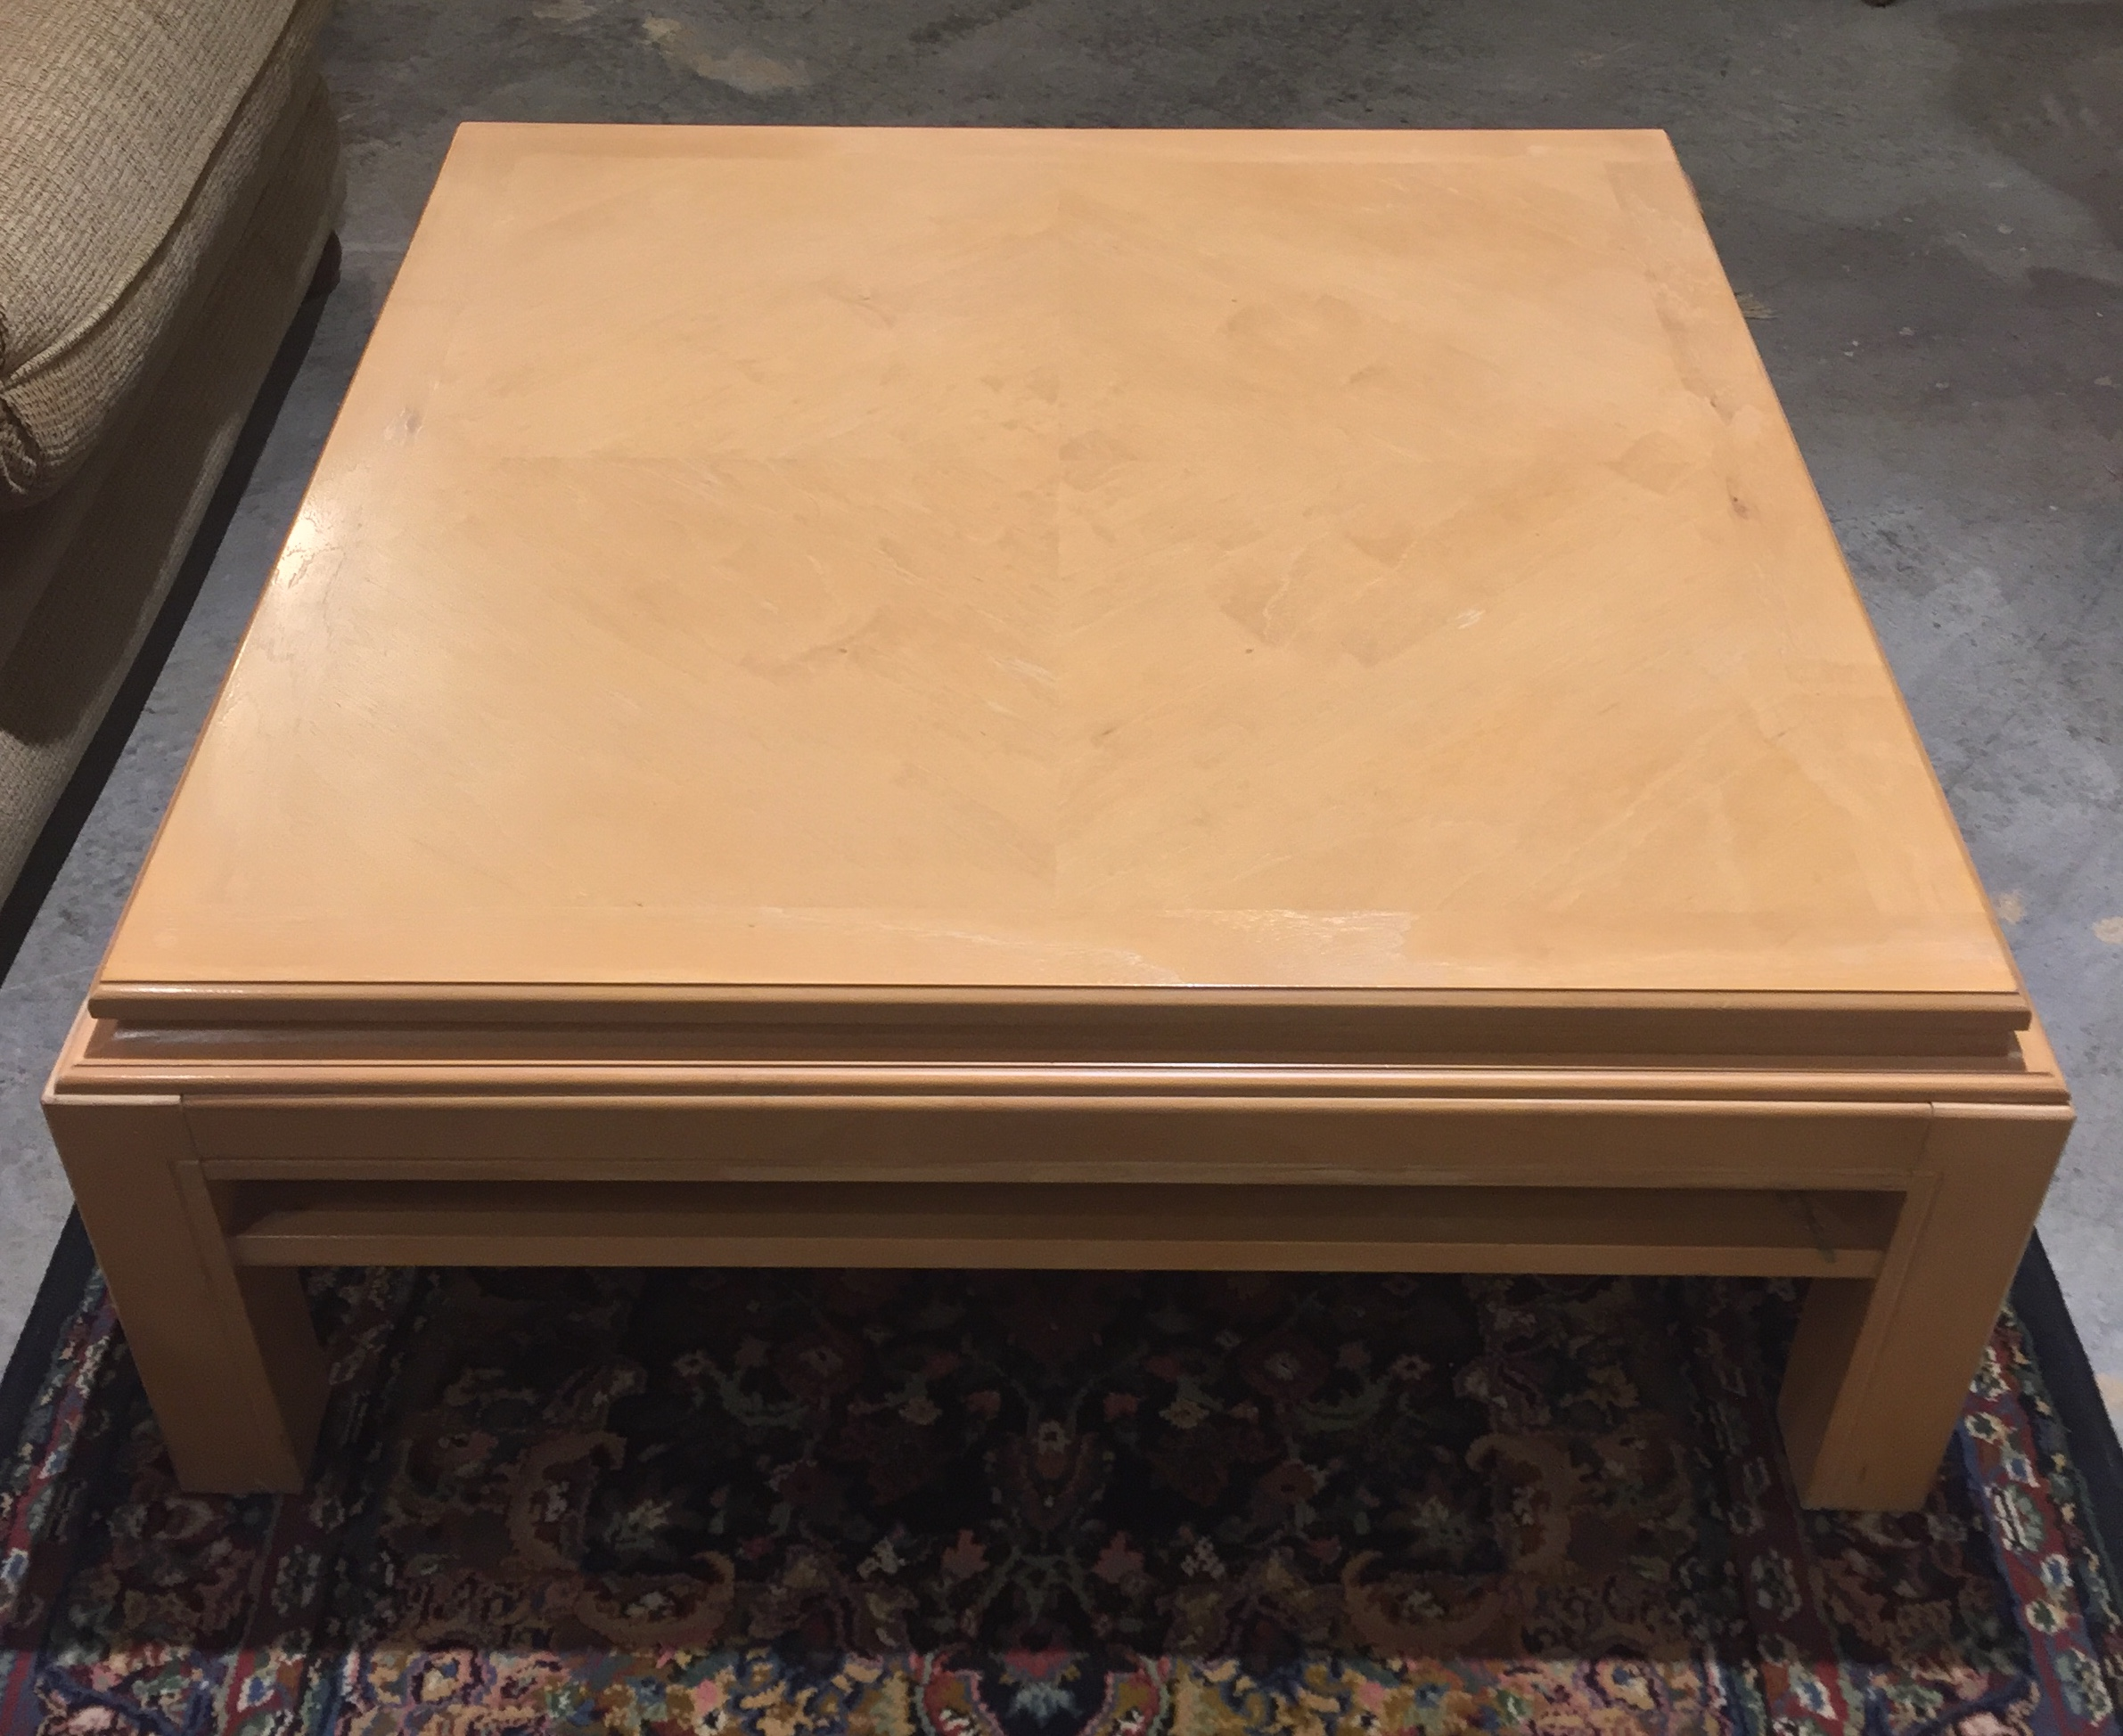 Blonde Square Coffee Table $119.95 - C1077 22916